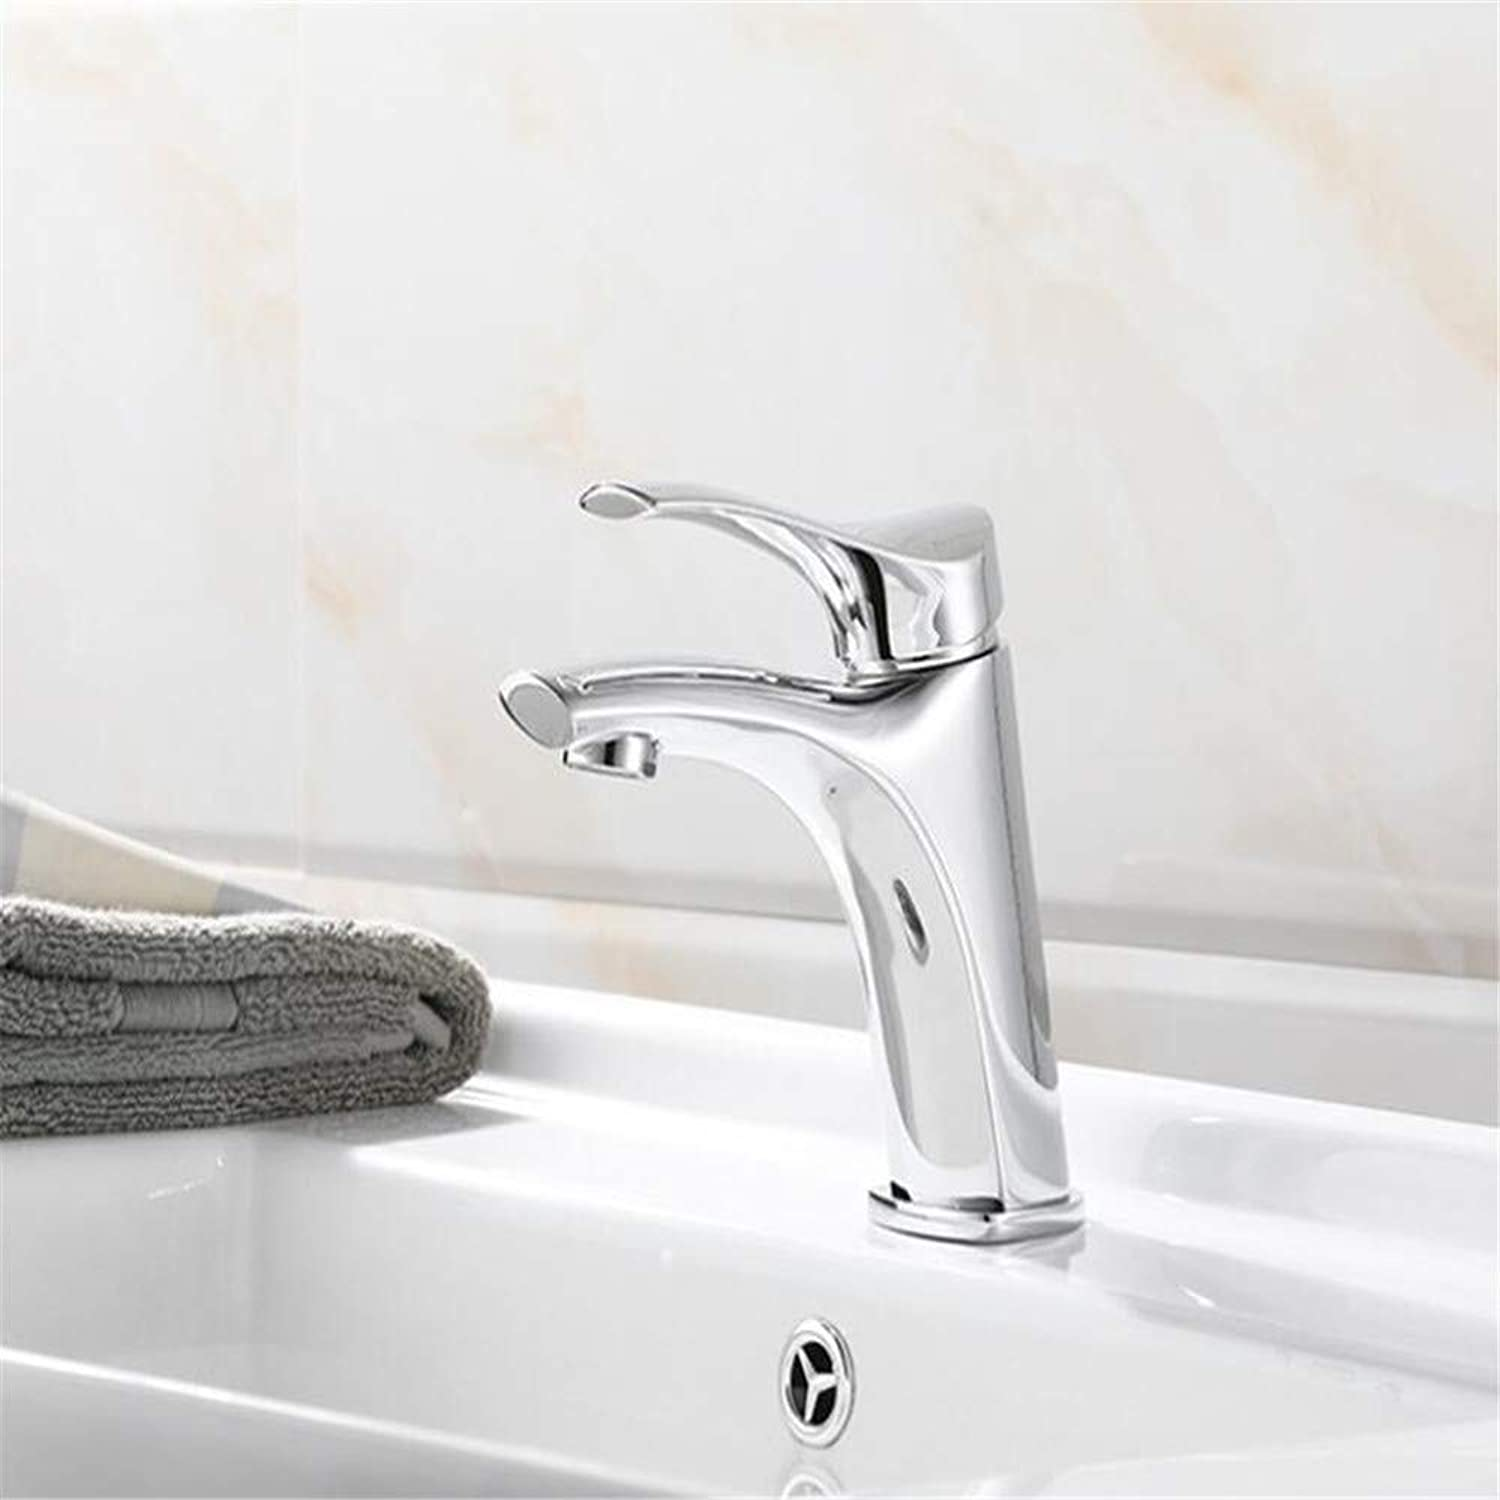 Faucetbasin Mixer Tap Ceramic Spool Basin Faucet All Copper Hot and Cold Water Basin Faucet pink gold